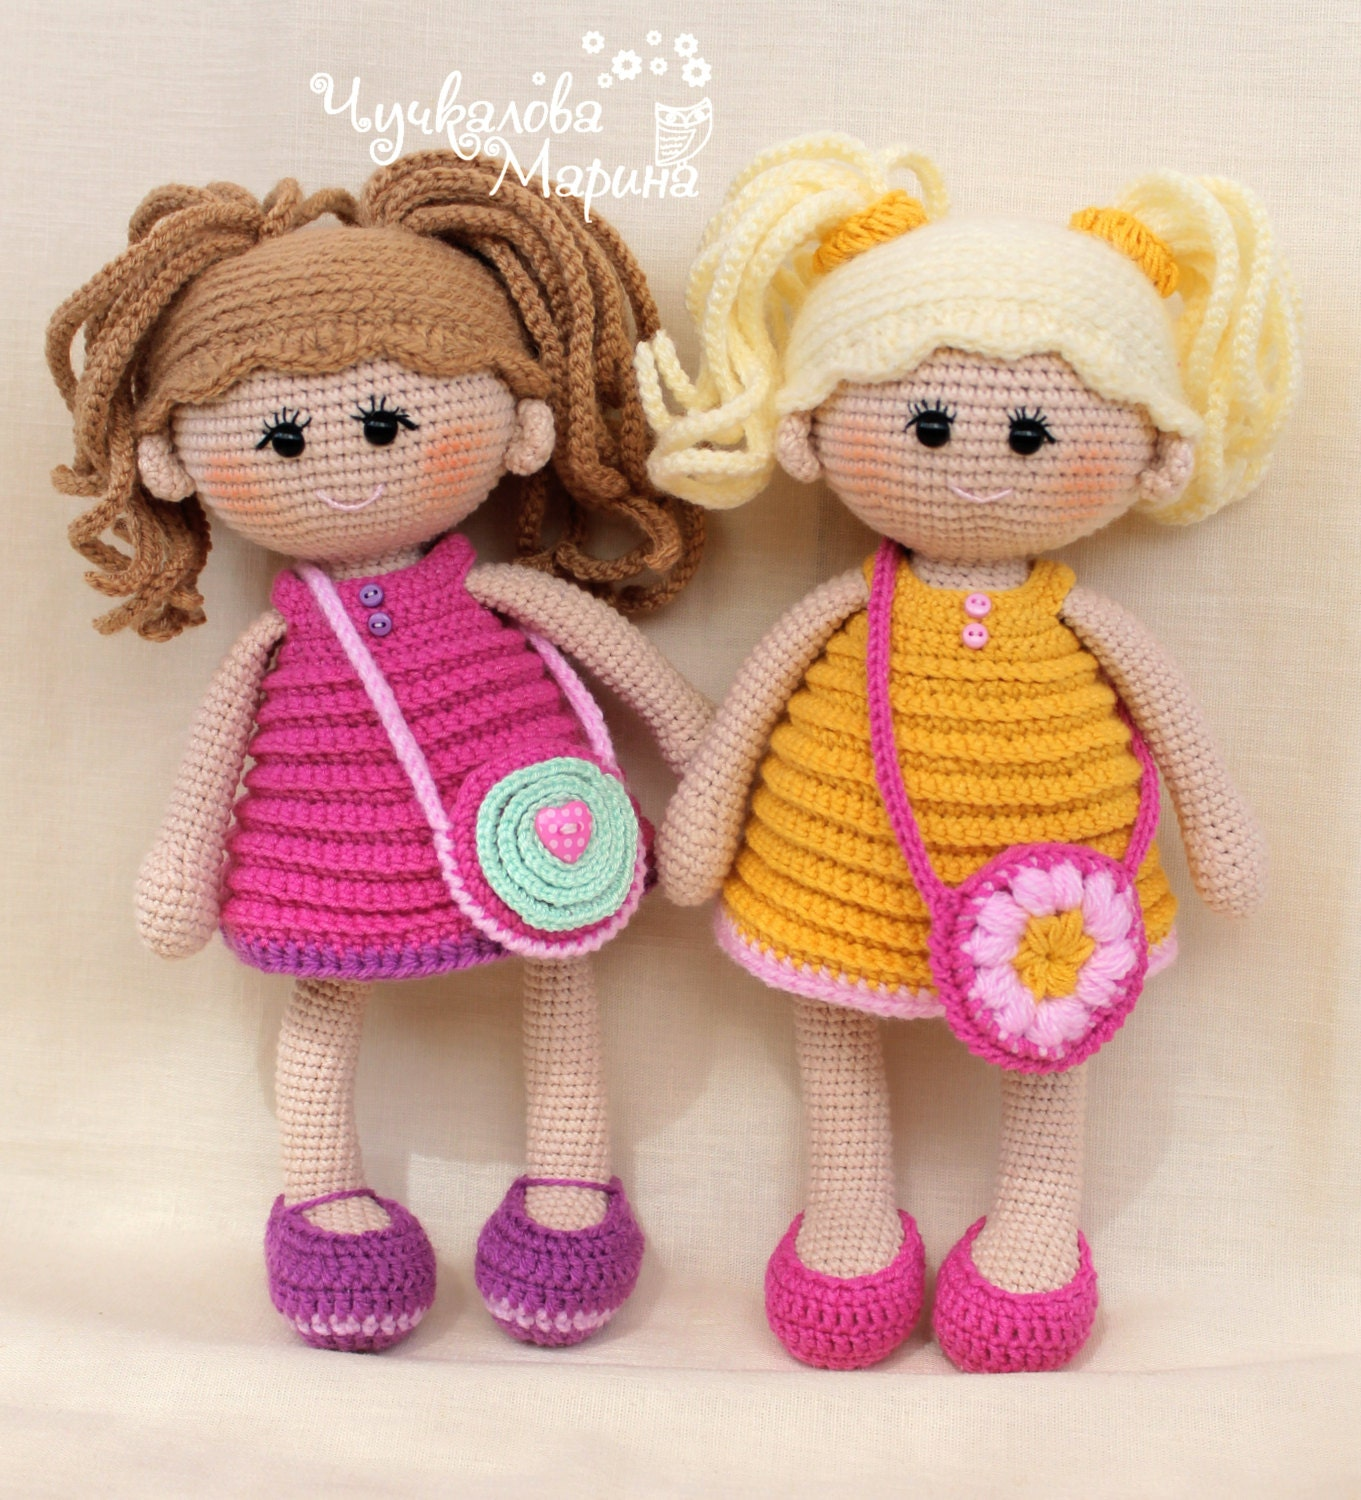 Crochet Doll Pattern Easy : PATTERN Pumposhka doll PDF crochet doll pattern